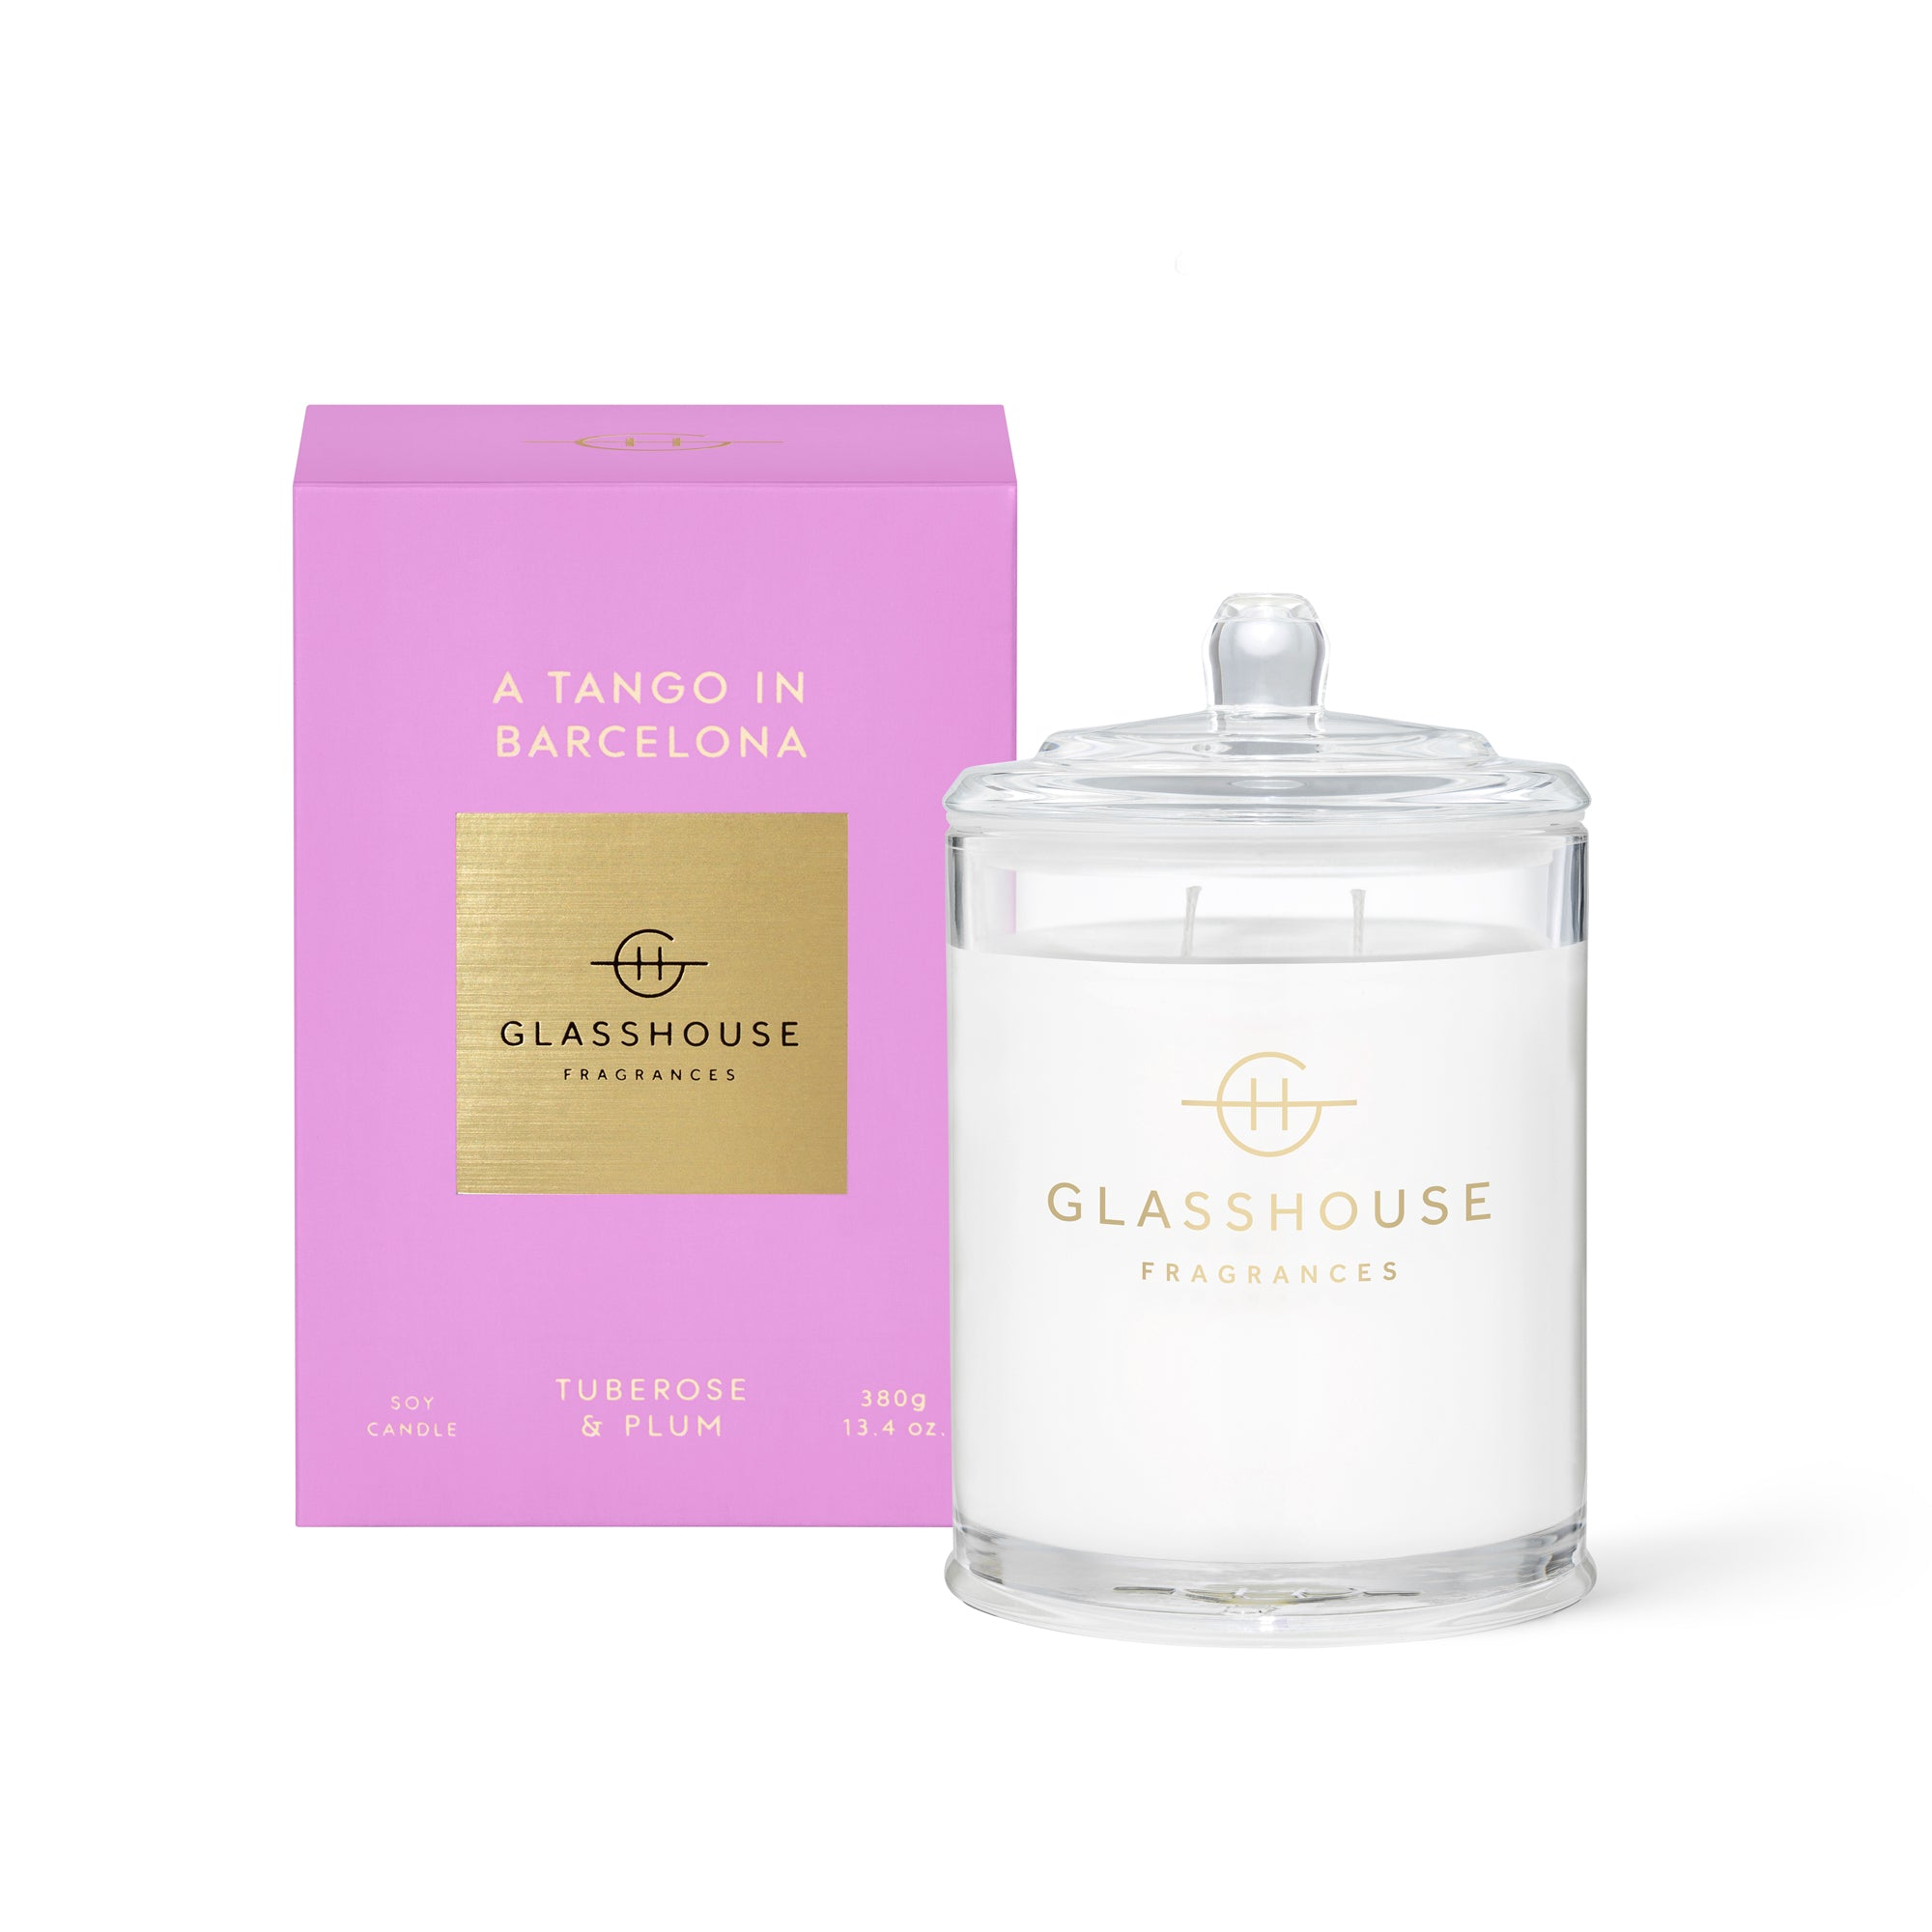 GLASSHOUSE - A TANGO IN BARCELONA Candle 380g